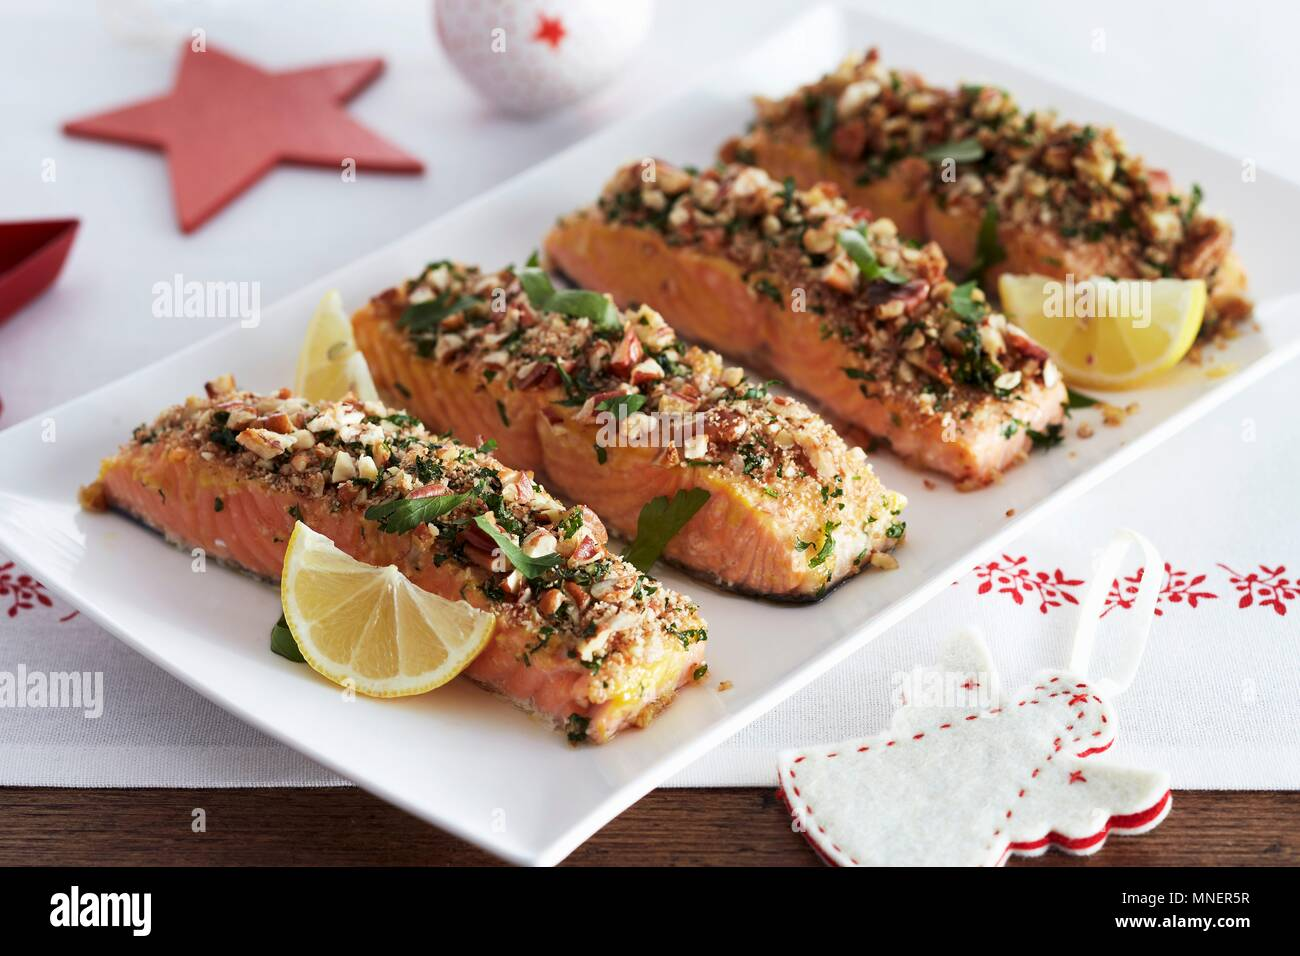 Salmon Fillets With A Nut Crust For Christmas Dinner Stock Photo